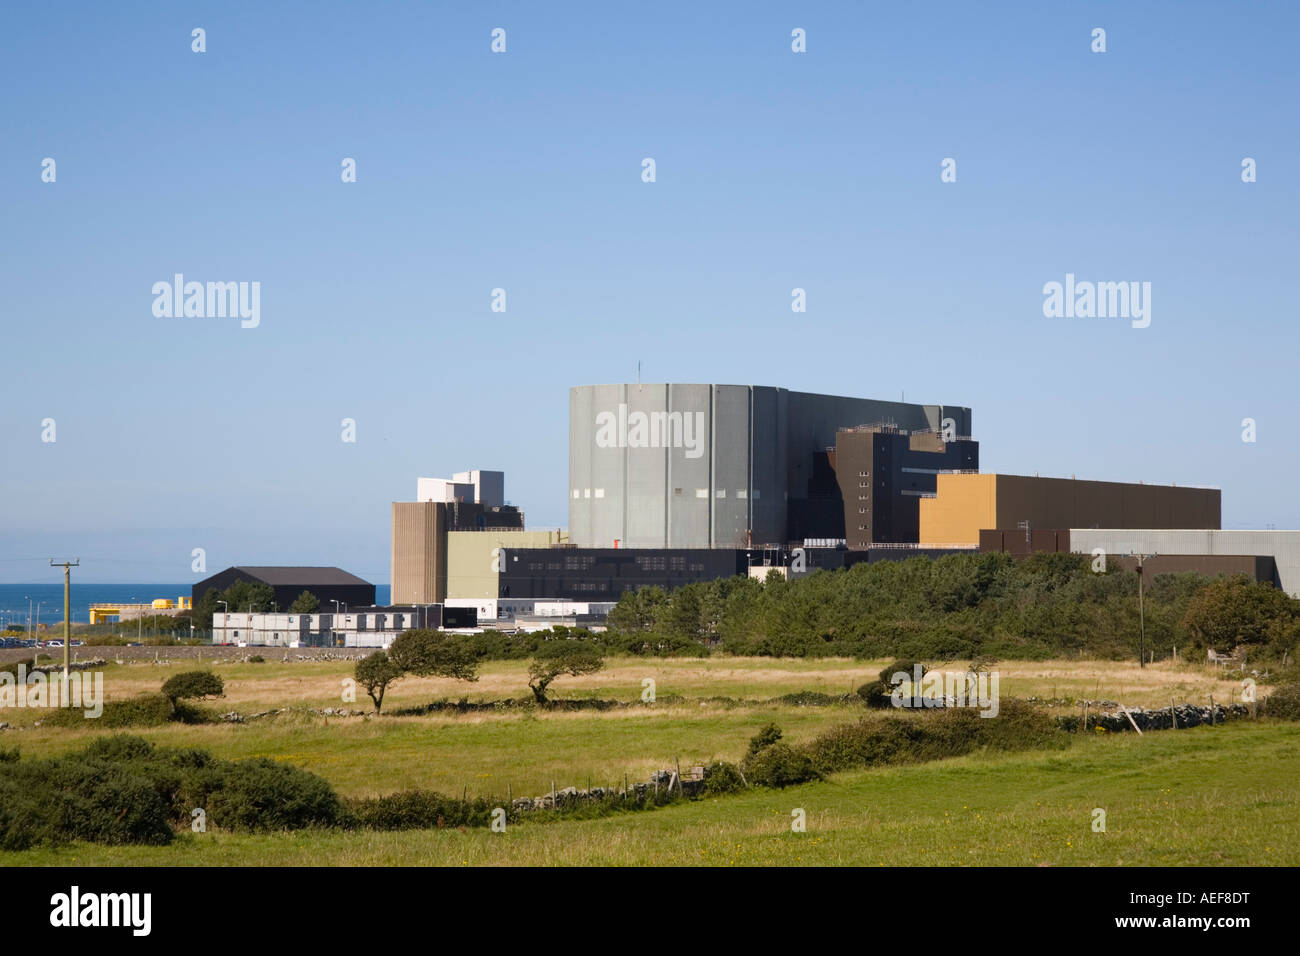 Wylfa Nuclear Power Station exterior atomic energy provider on north coast of Isle of Anglesey North Wales UK Britain. - Stock Image